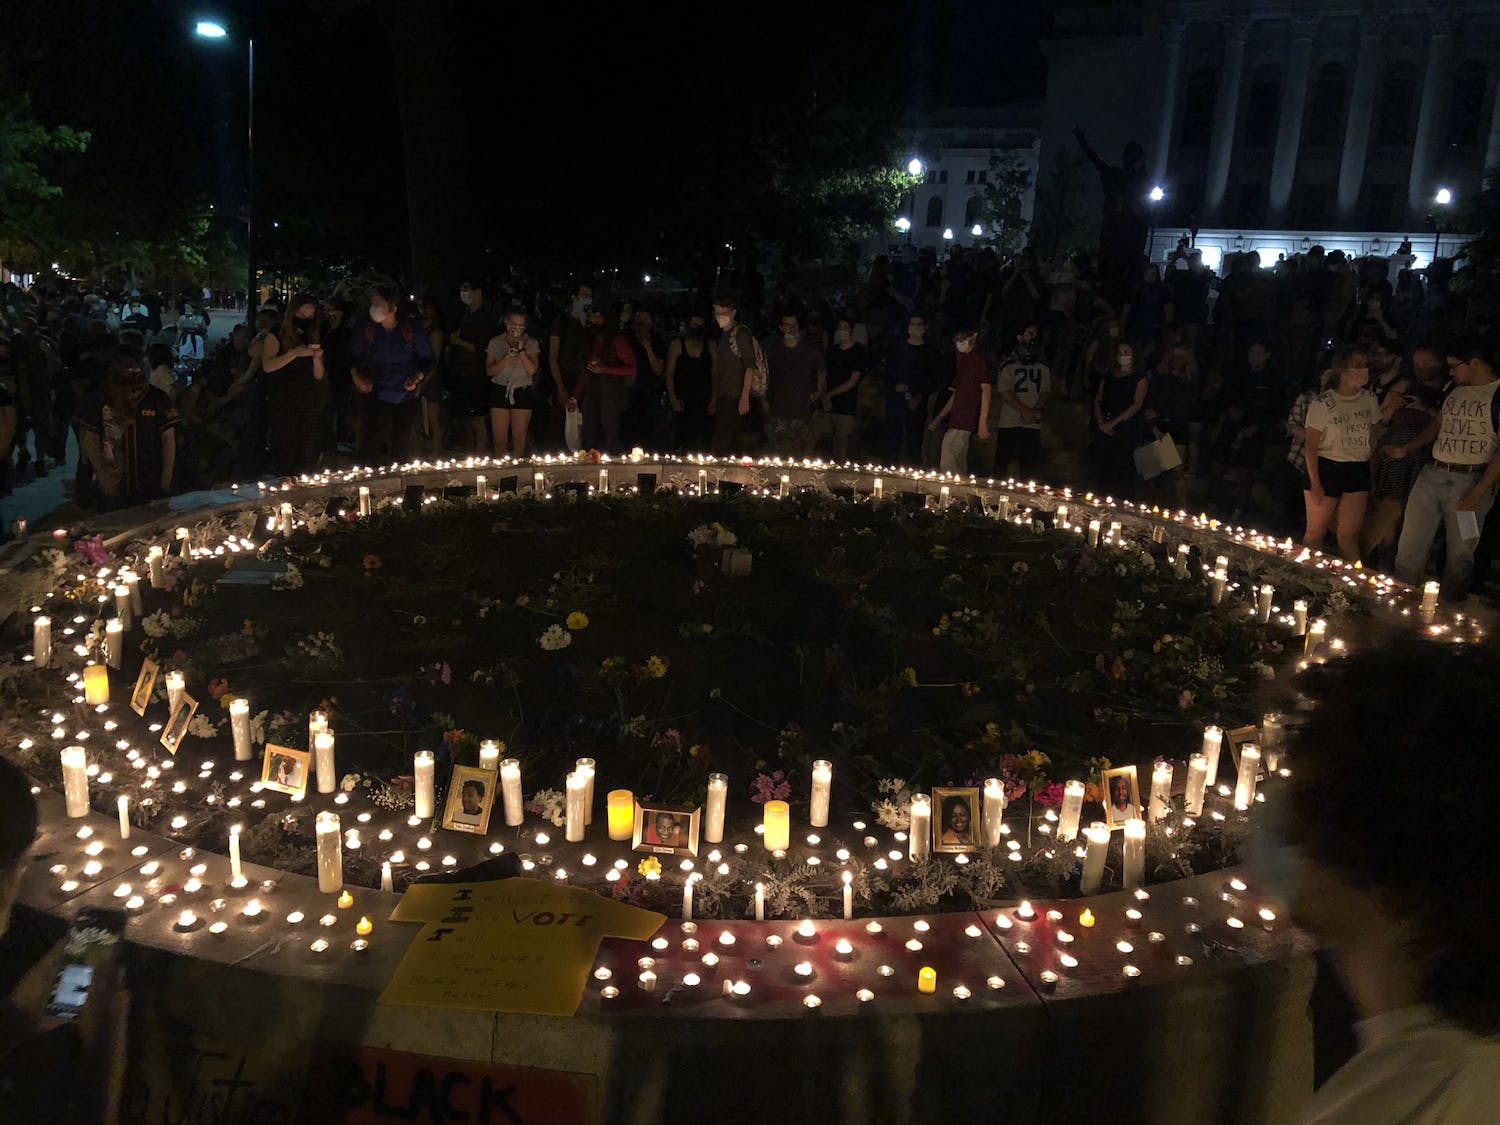 A memorial for all Black lives lost at the Capitol Wednesday night.